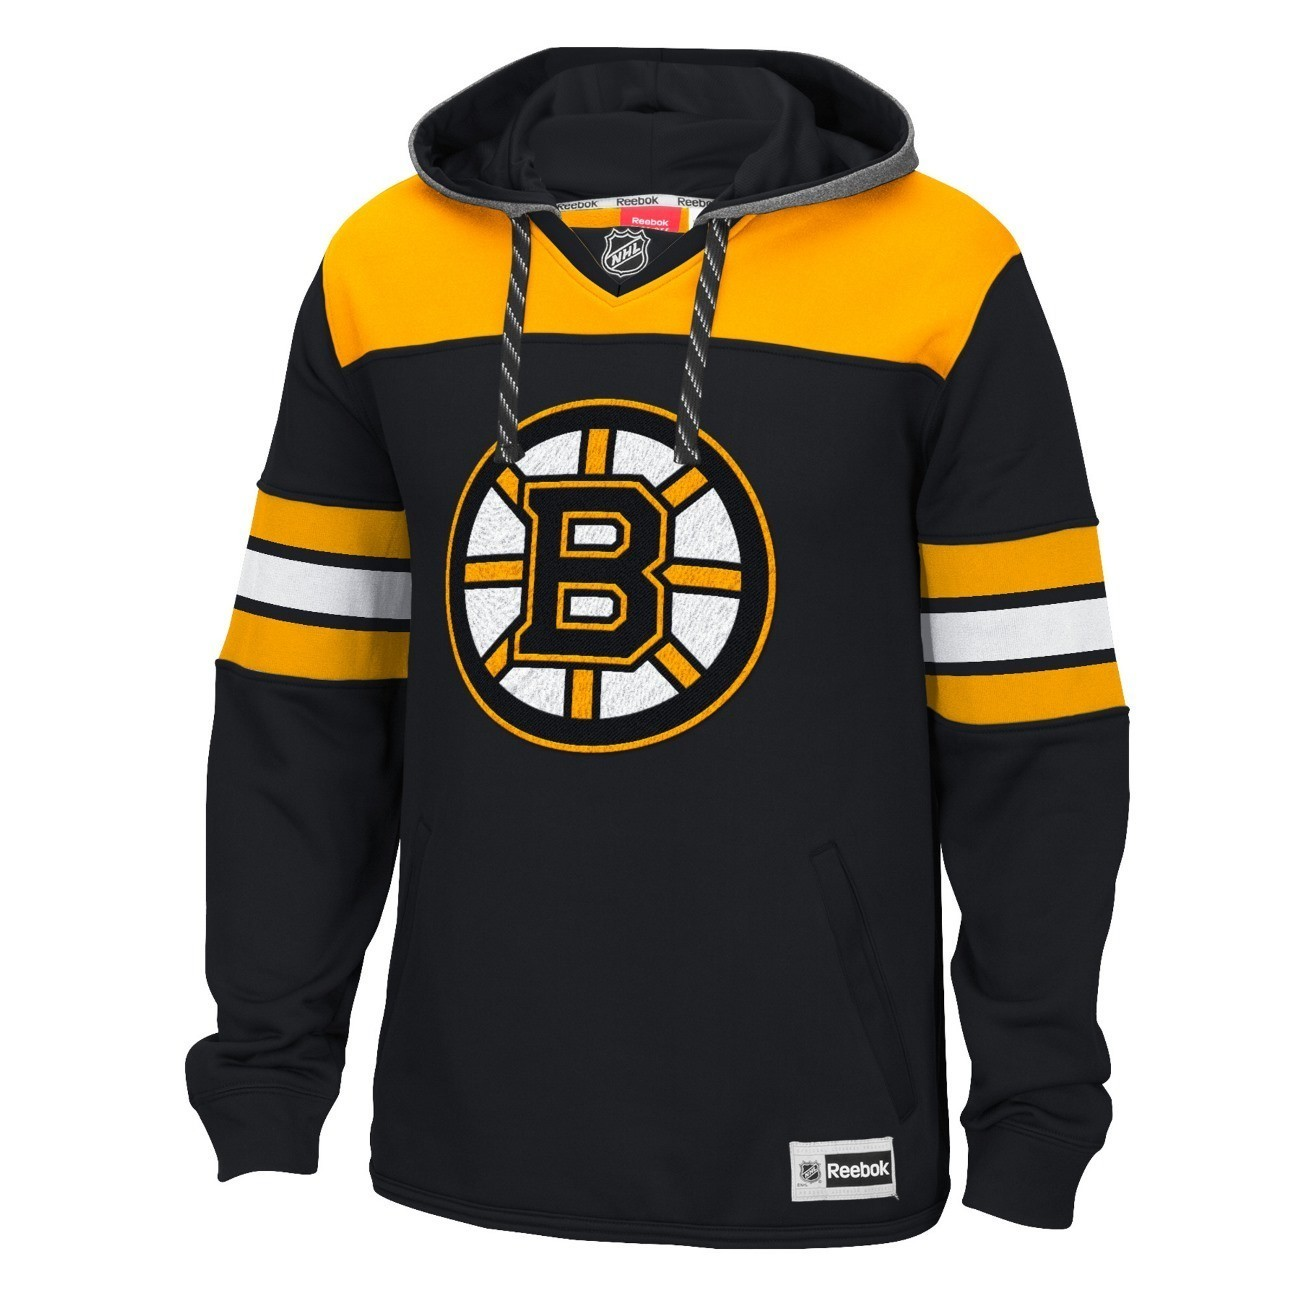 NHL Merchandise and Apparel from the Ultimate NHL Shop. Hockey fans can gear up with the brand new adidas NHL Apparel from funnebux.gq The NHL's best players are sporting the NHL adidas Jersey and our NHL store is stocked with the new ADIZERO looks.